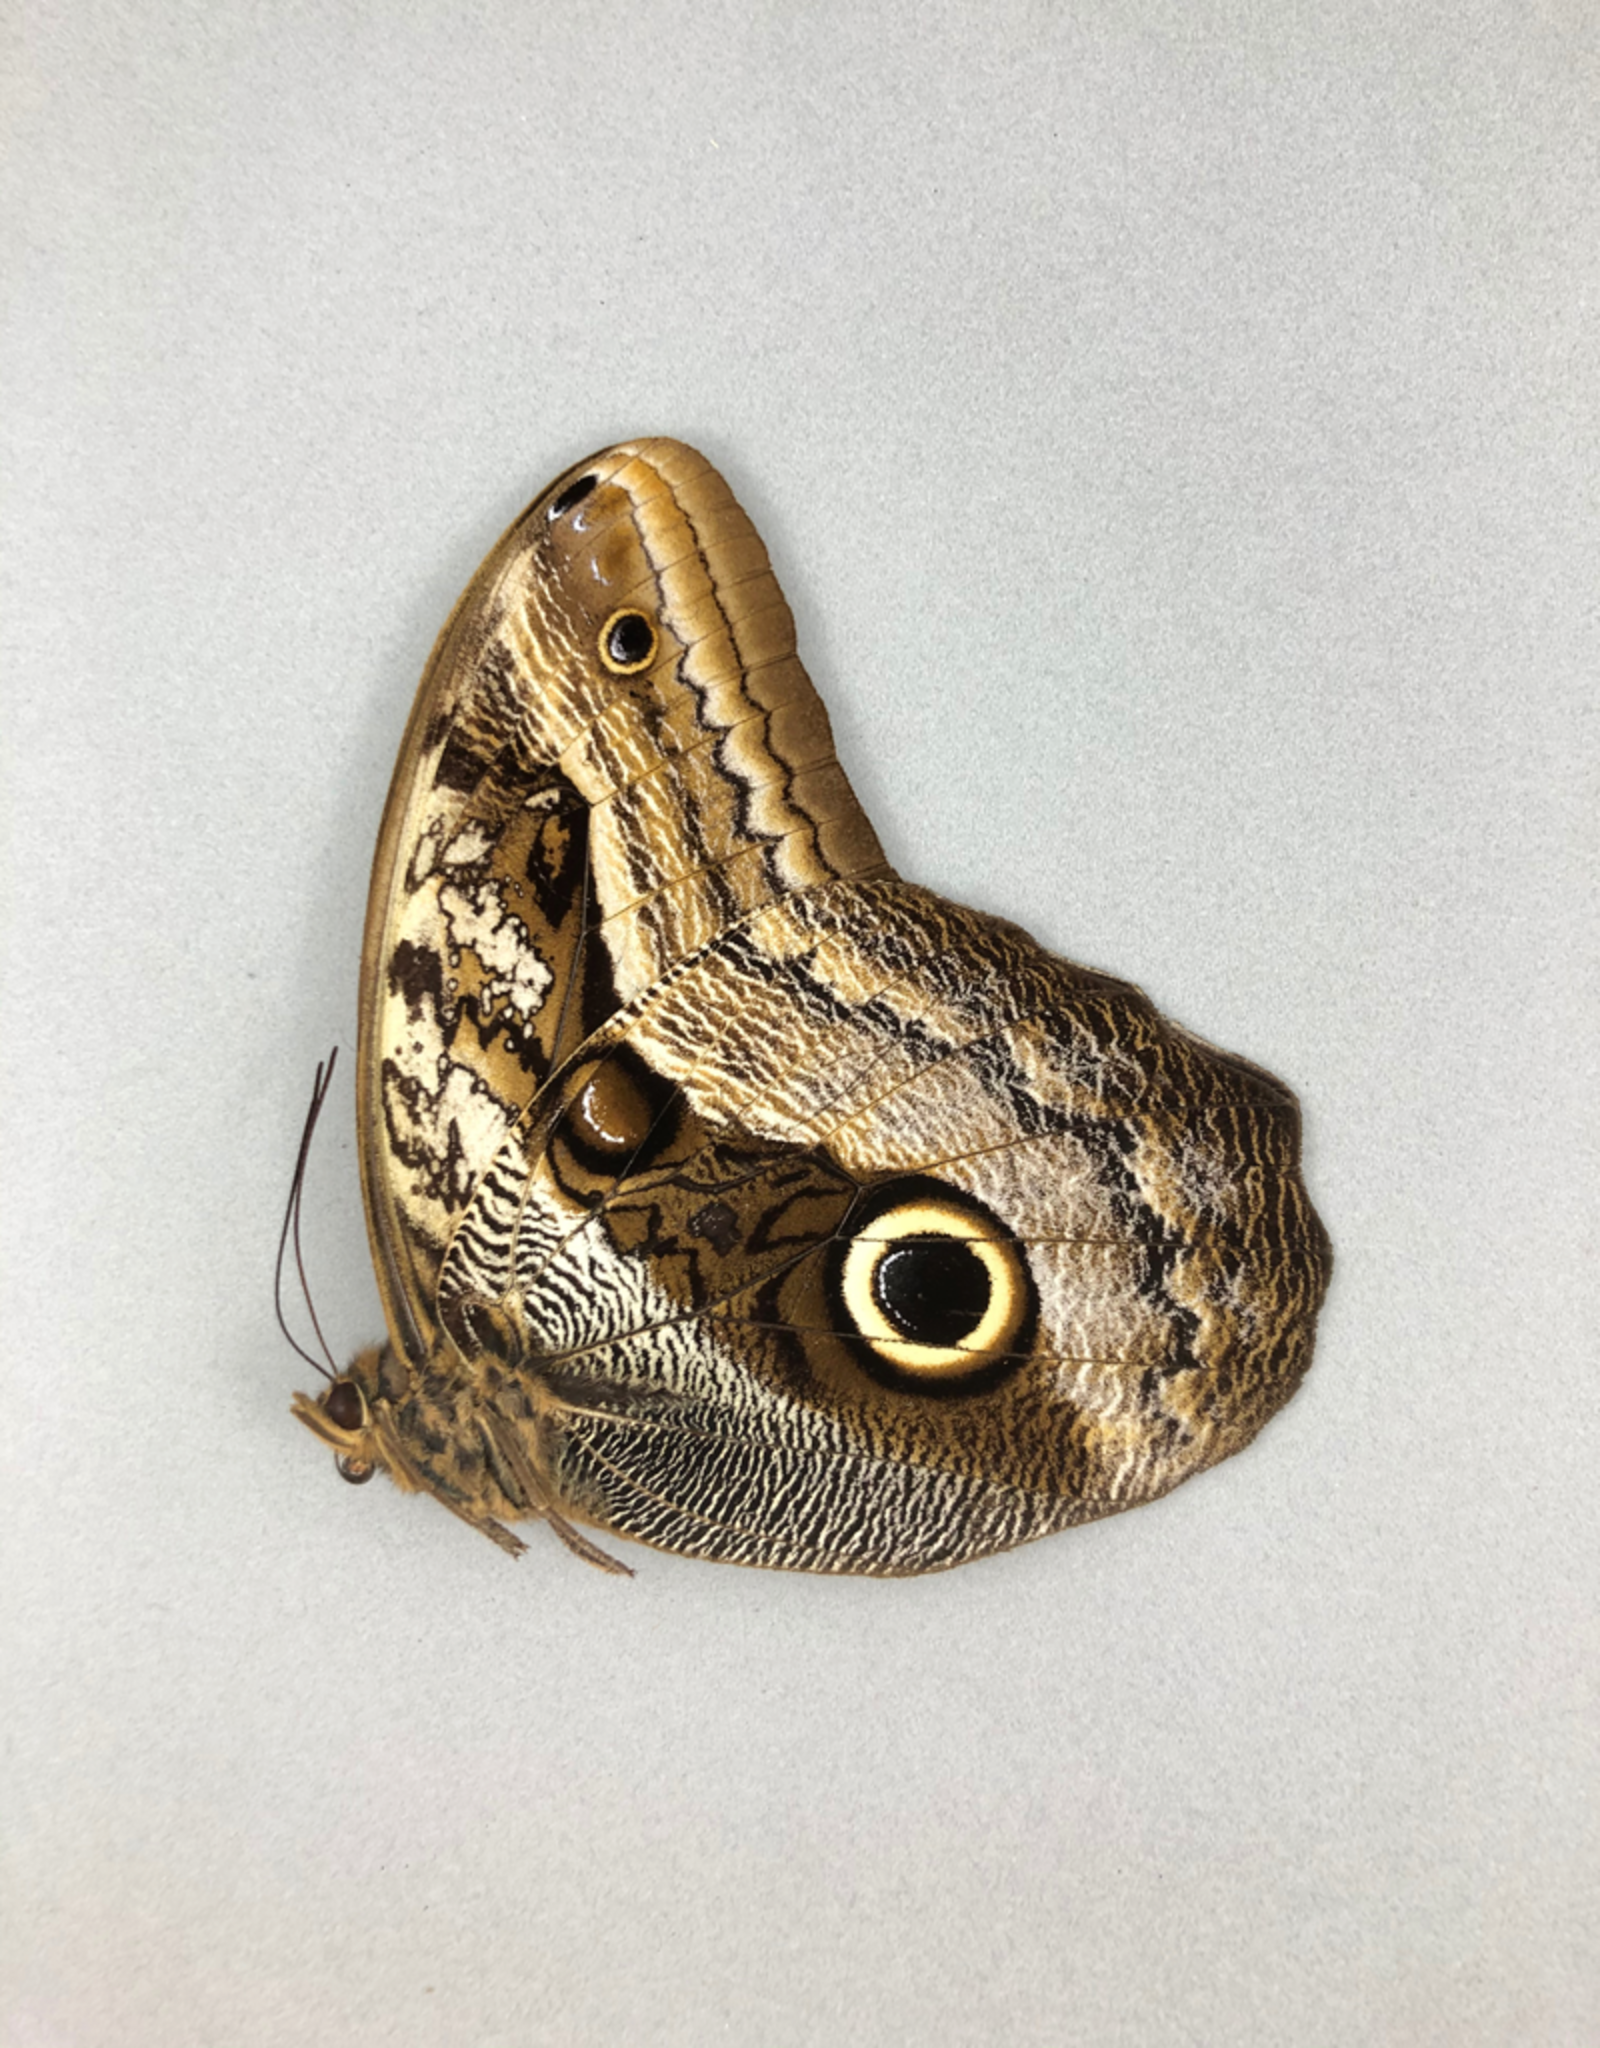 Caligo placidianus M A1 Peru